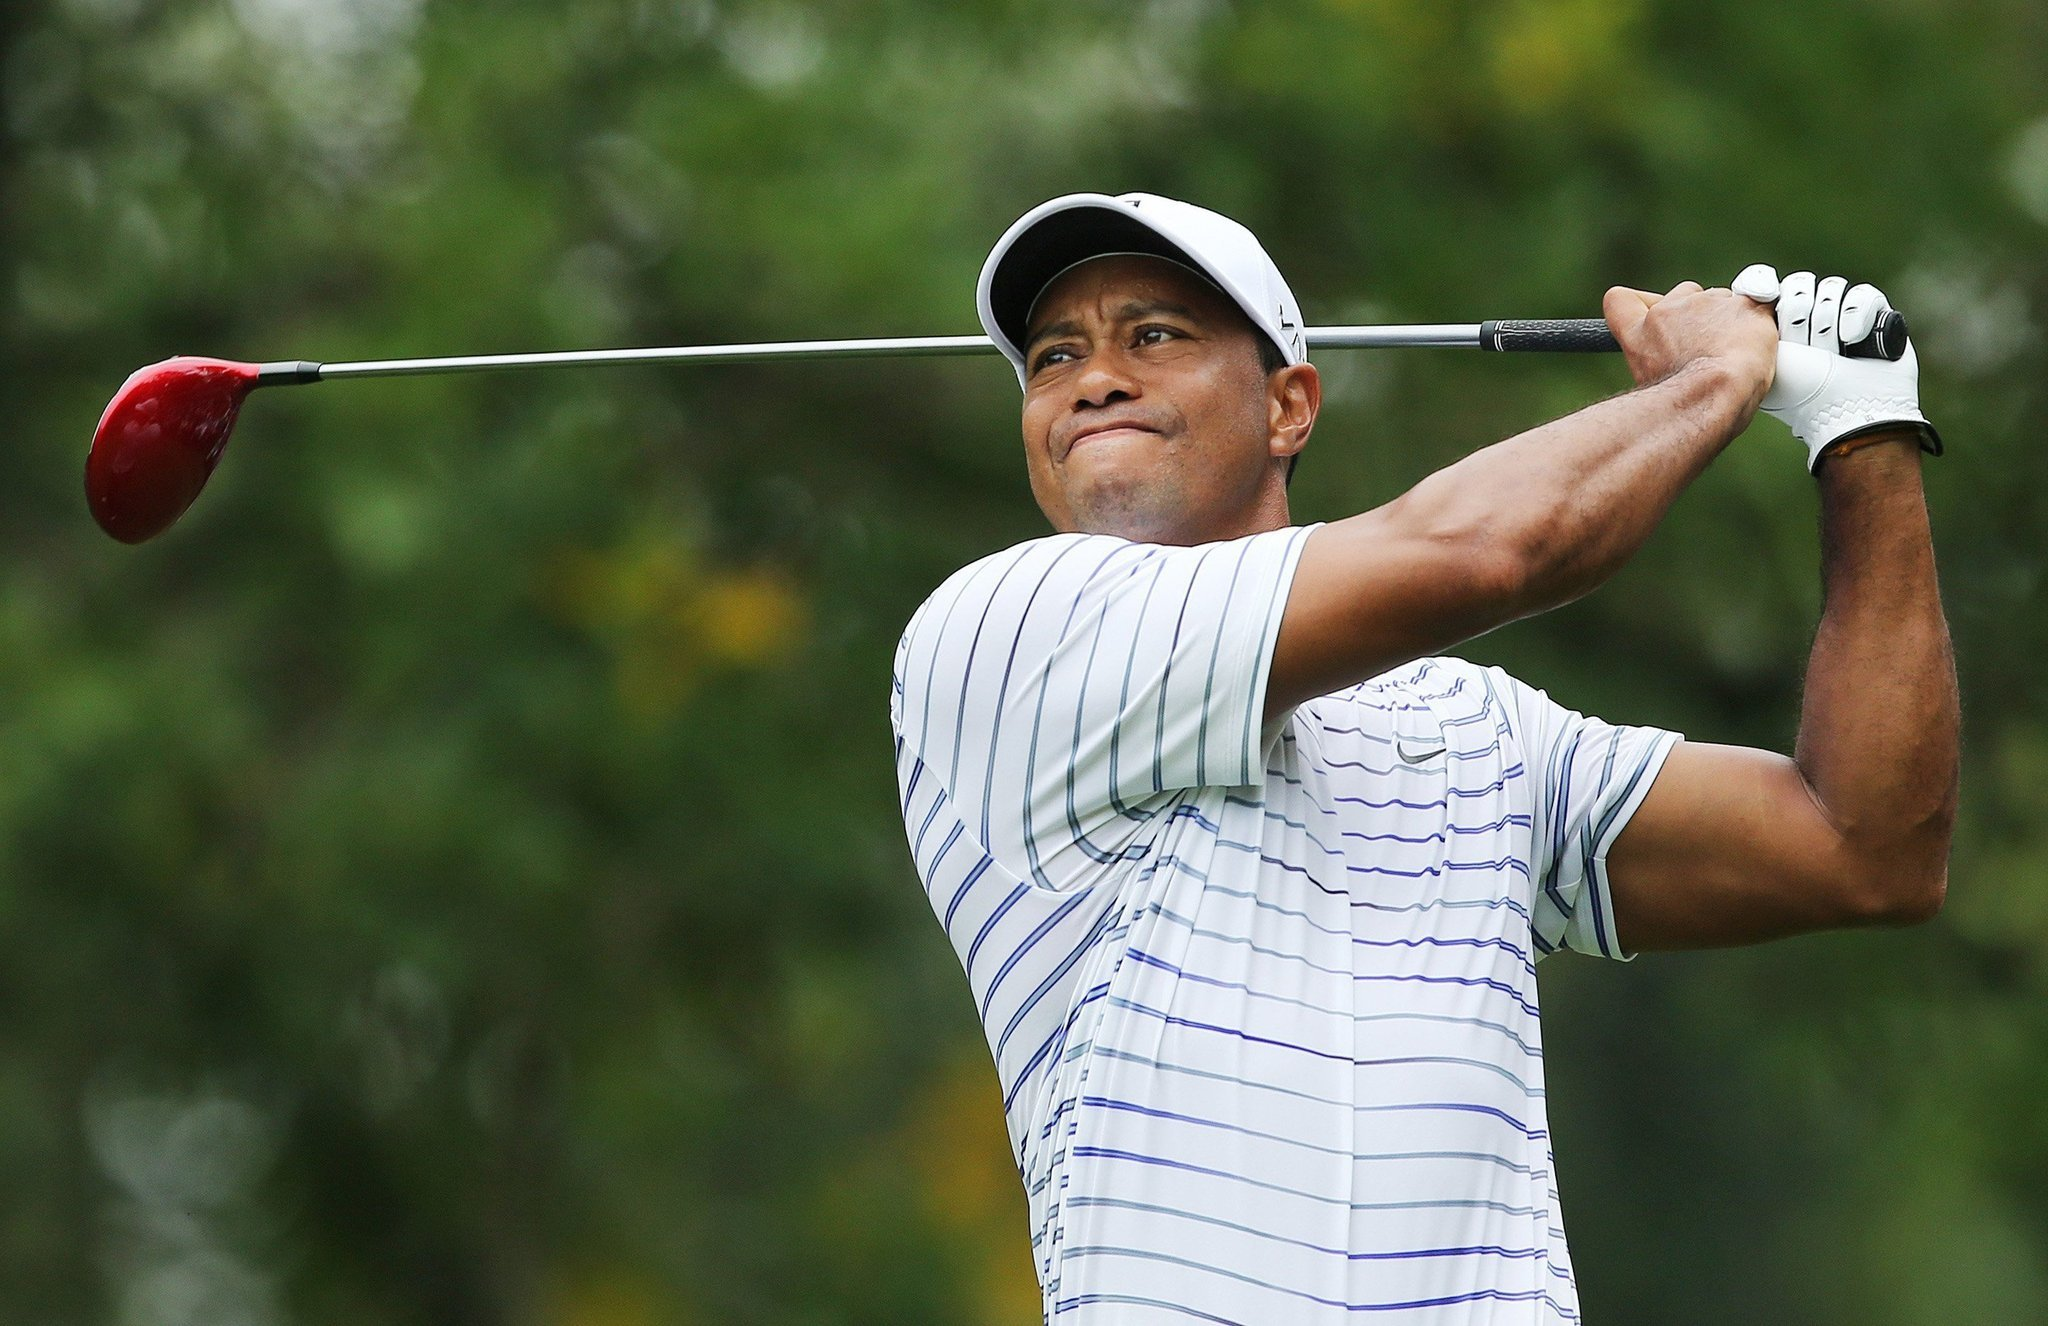 a look at the life of tiger woods A look inside tiger woods' sick $20 million yacht he's living in during the us open a look inside tiger woods' sick $20 million yacht he's living in during the us open golf.